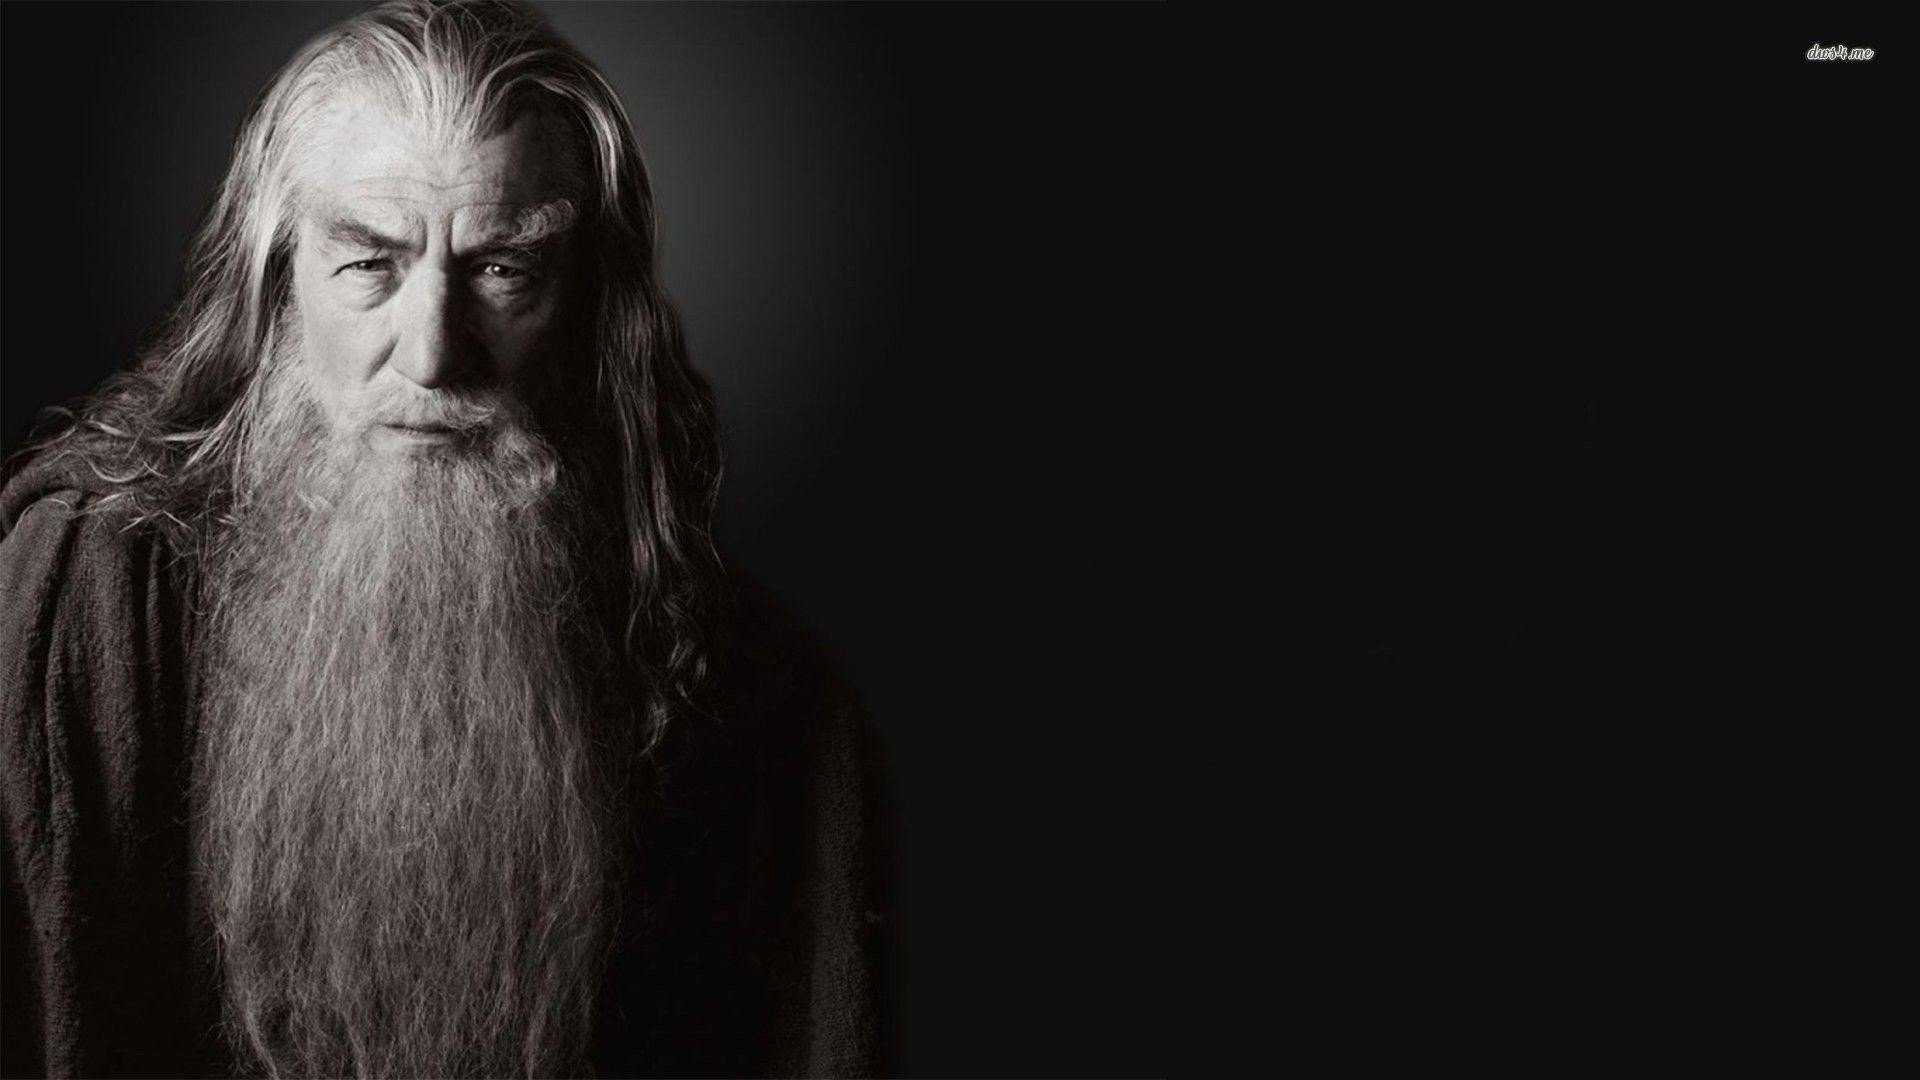 Albus Dumbledore Wallpapers 62 images 1920x1080